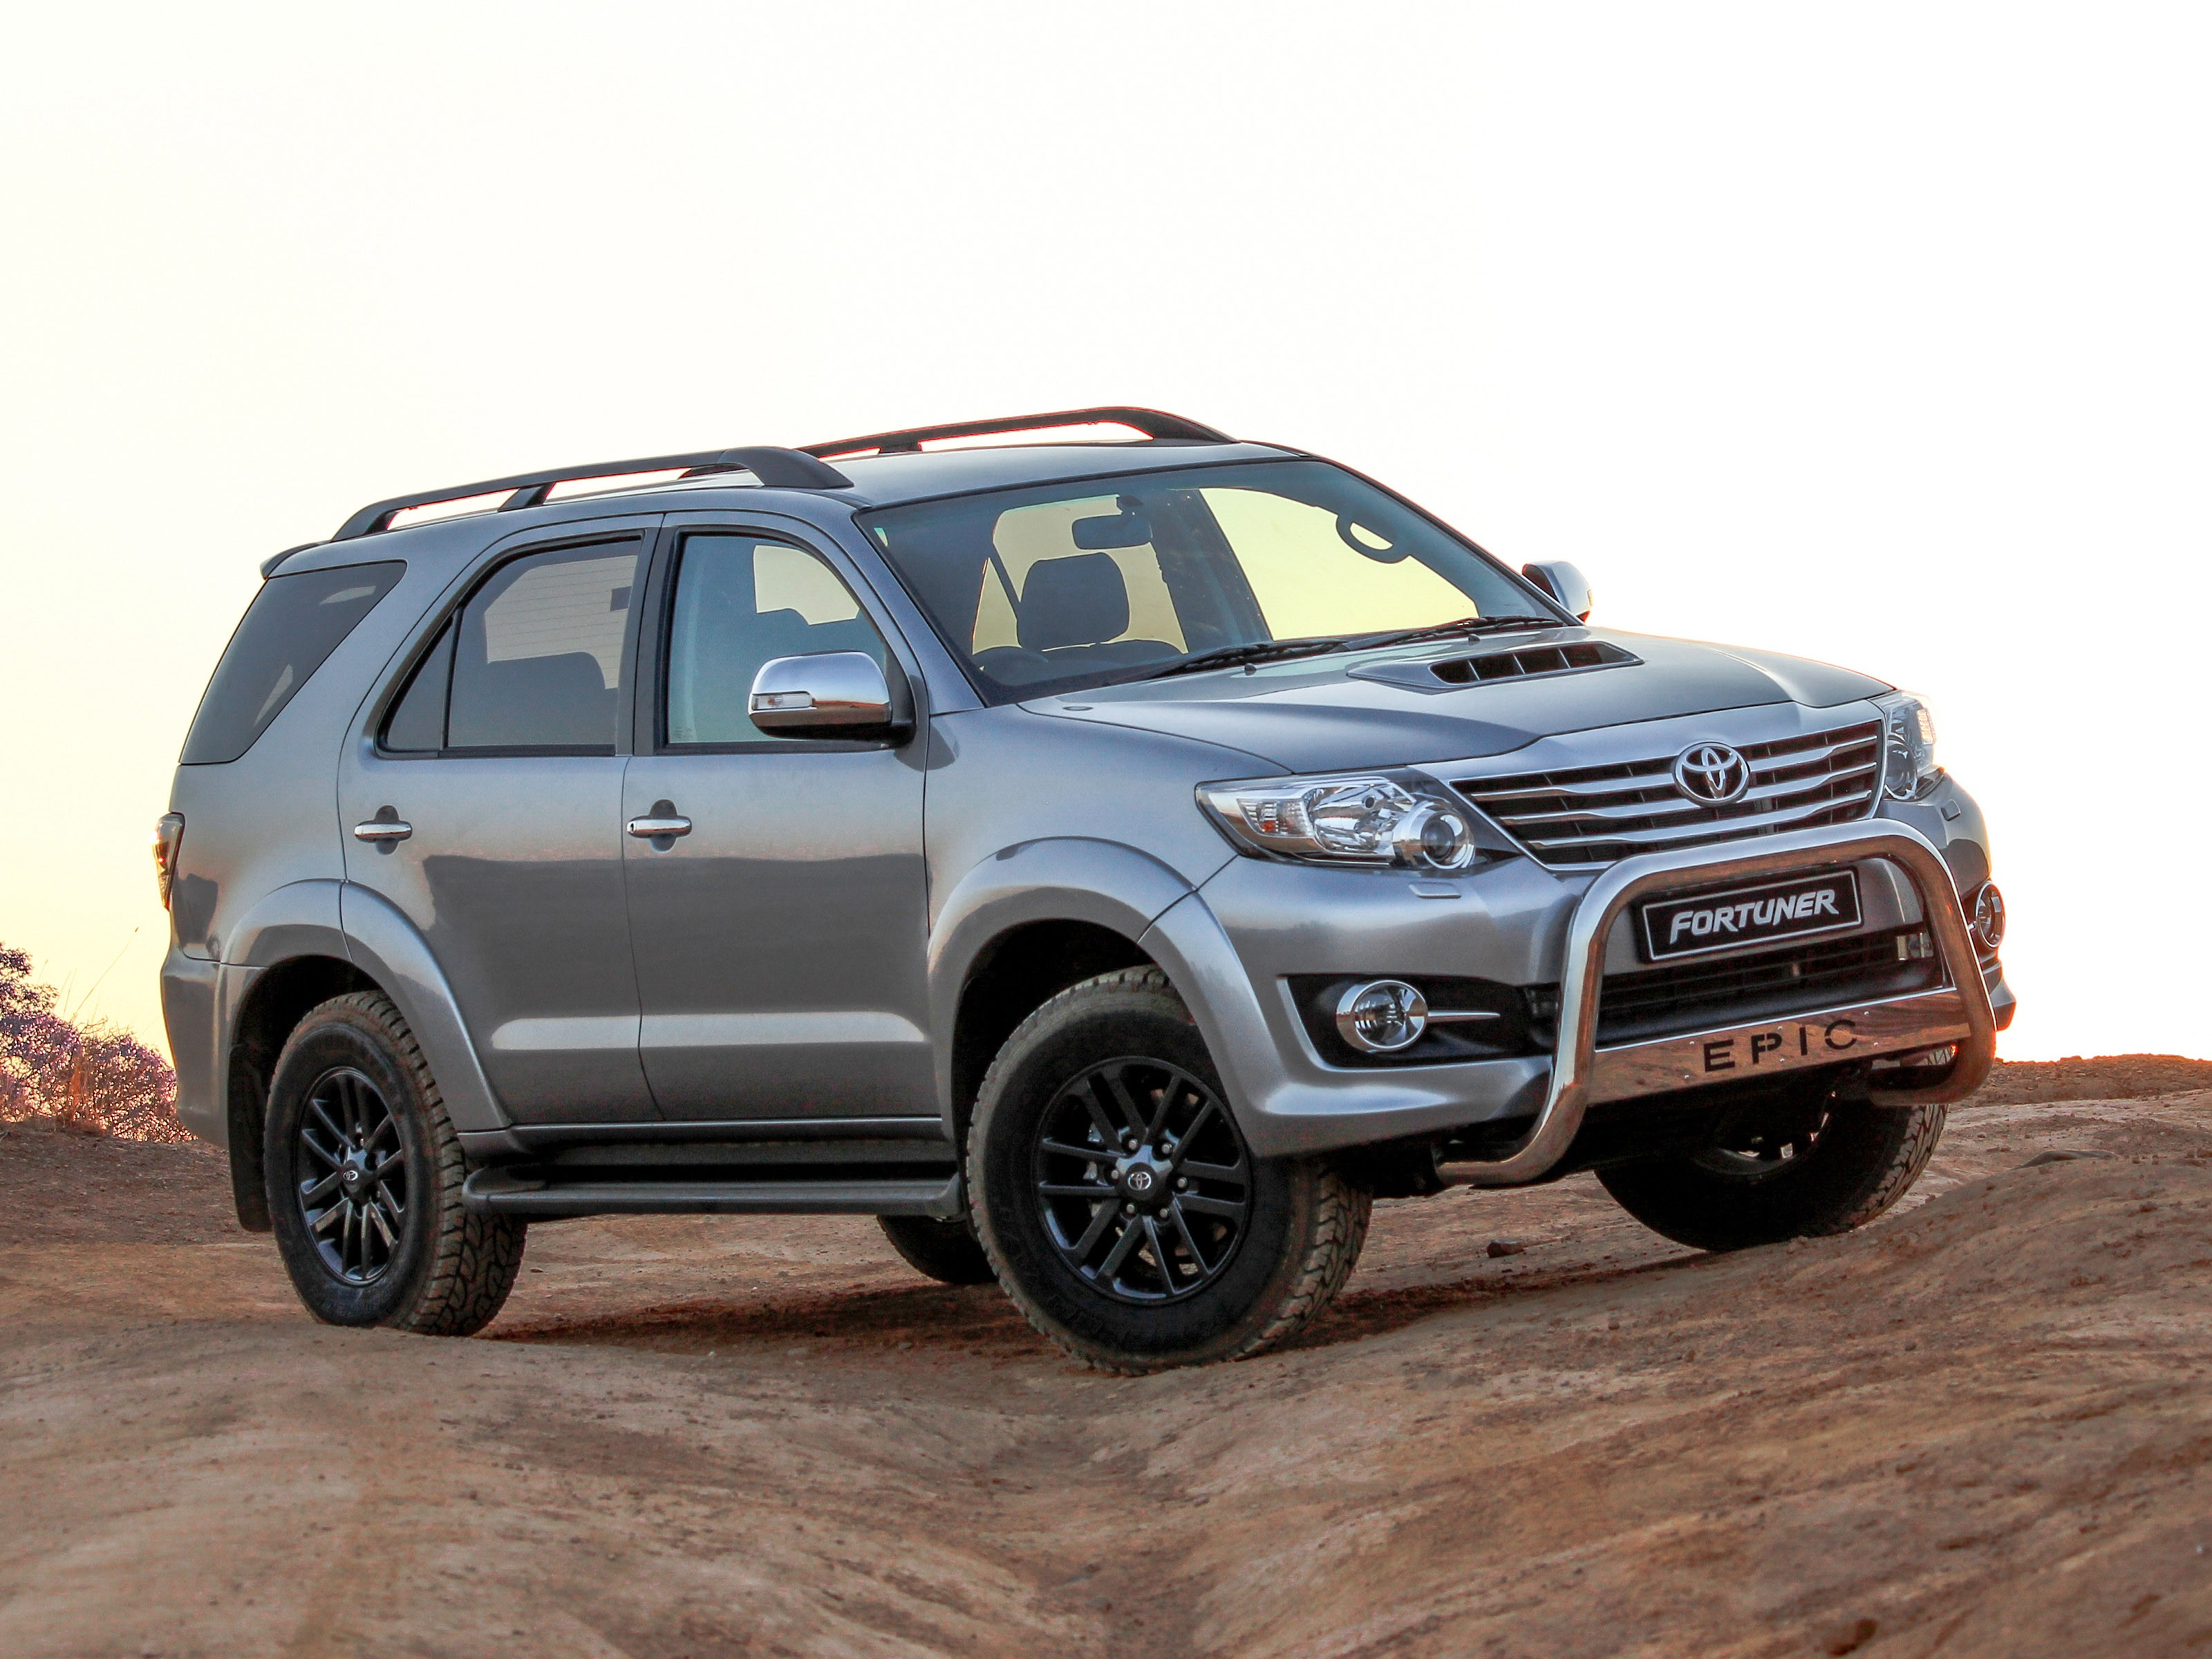 2015 Toyota Fortuner Epic